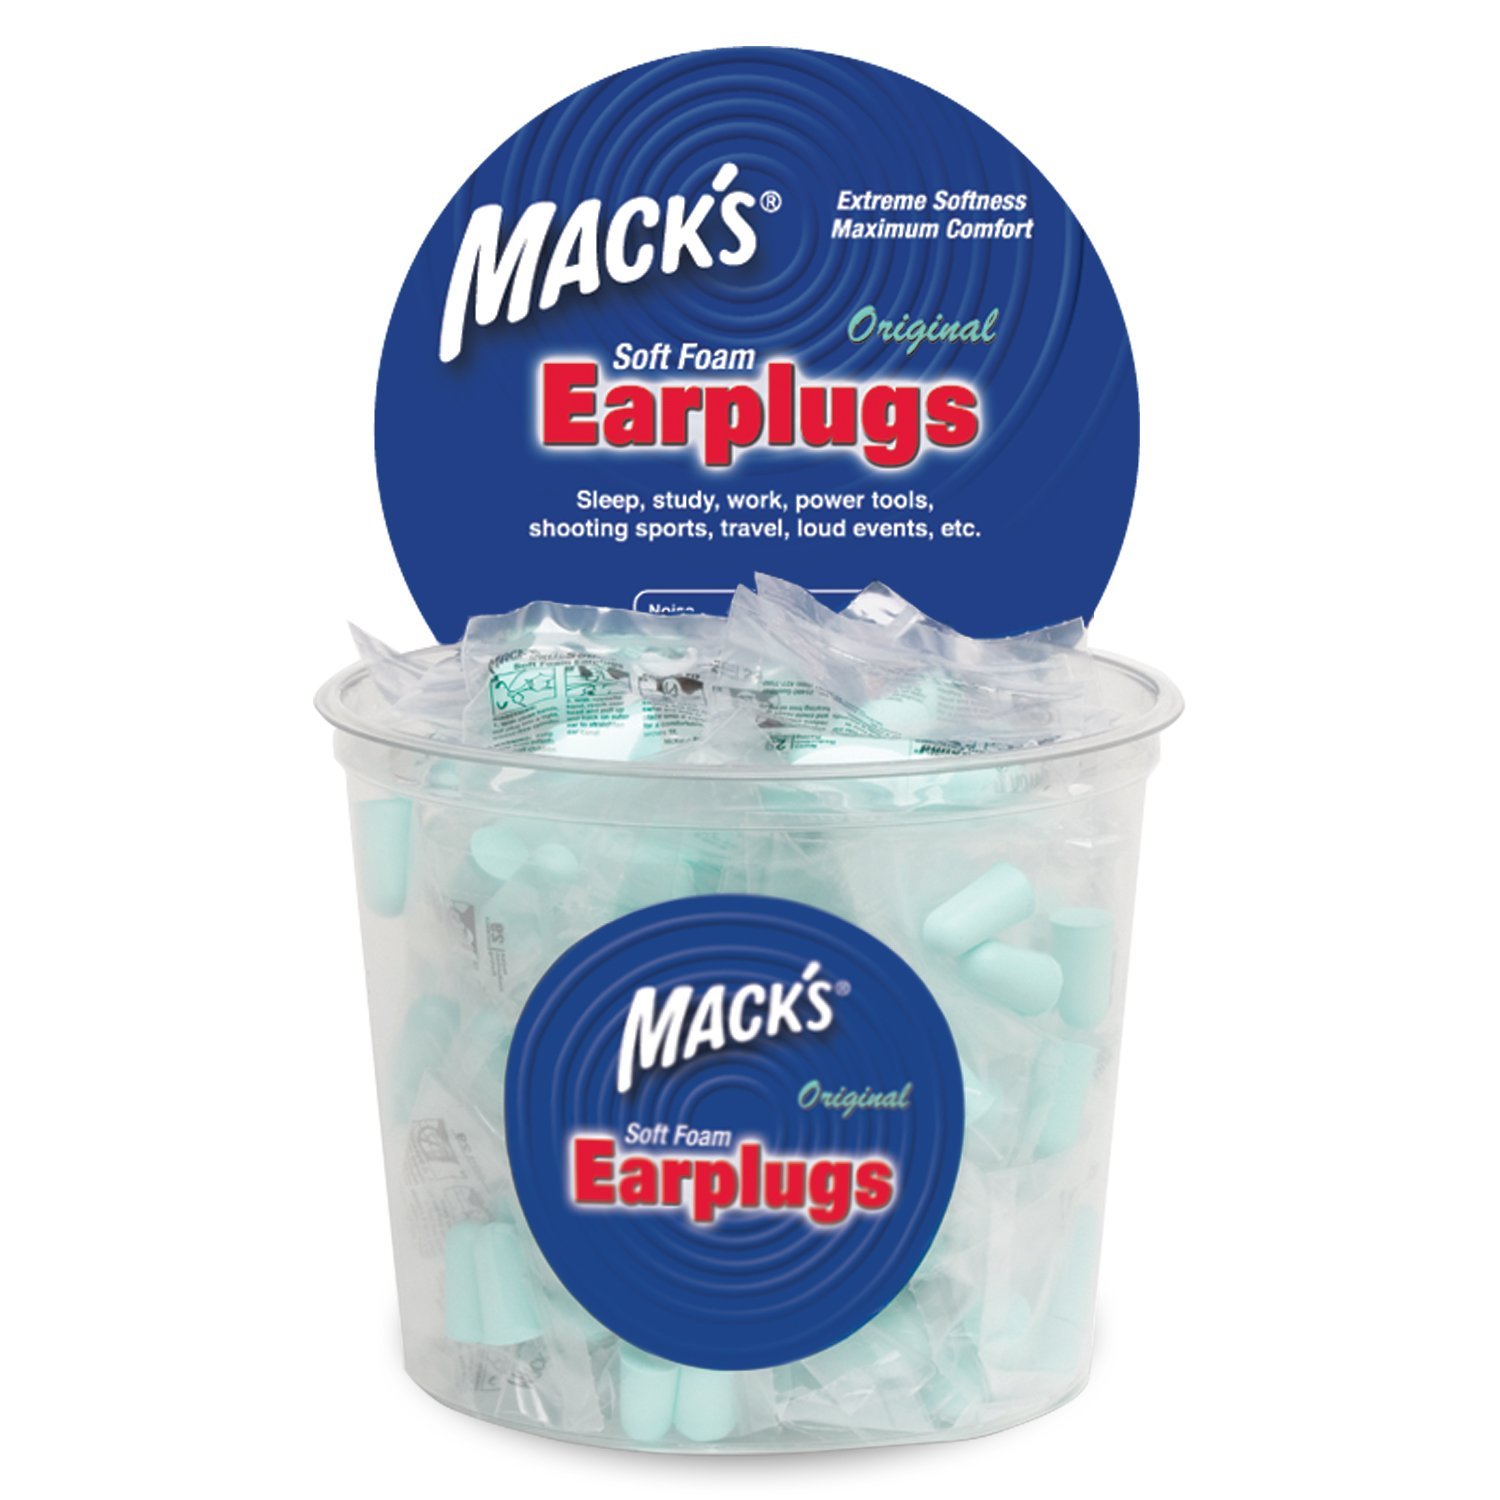 Mack's Original Soft Foam Earplugs -100 Pair - Individually Wrapped - 32dB Highest NRR, Comfortable Ear Plugs for Sleeping, Snoring, Work, Travel and Loud Events by Mack's (Image #2)